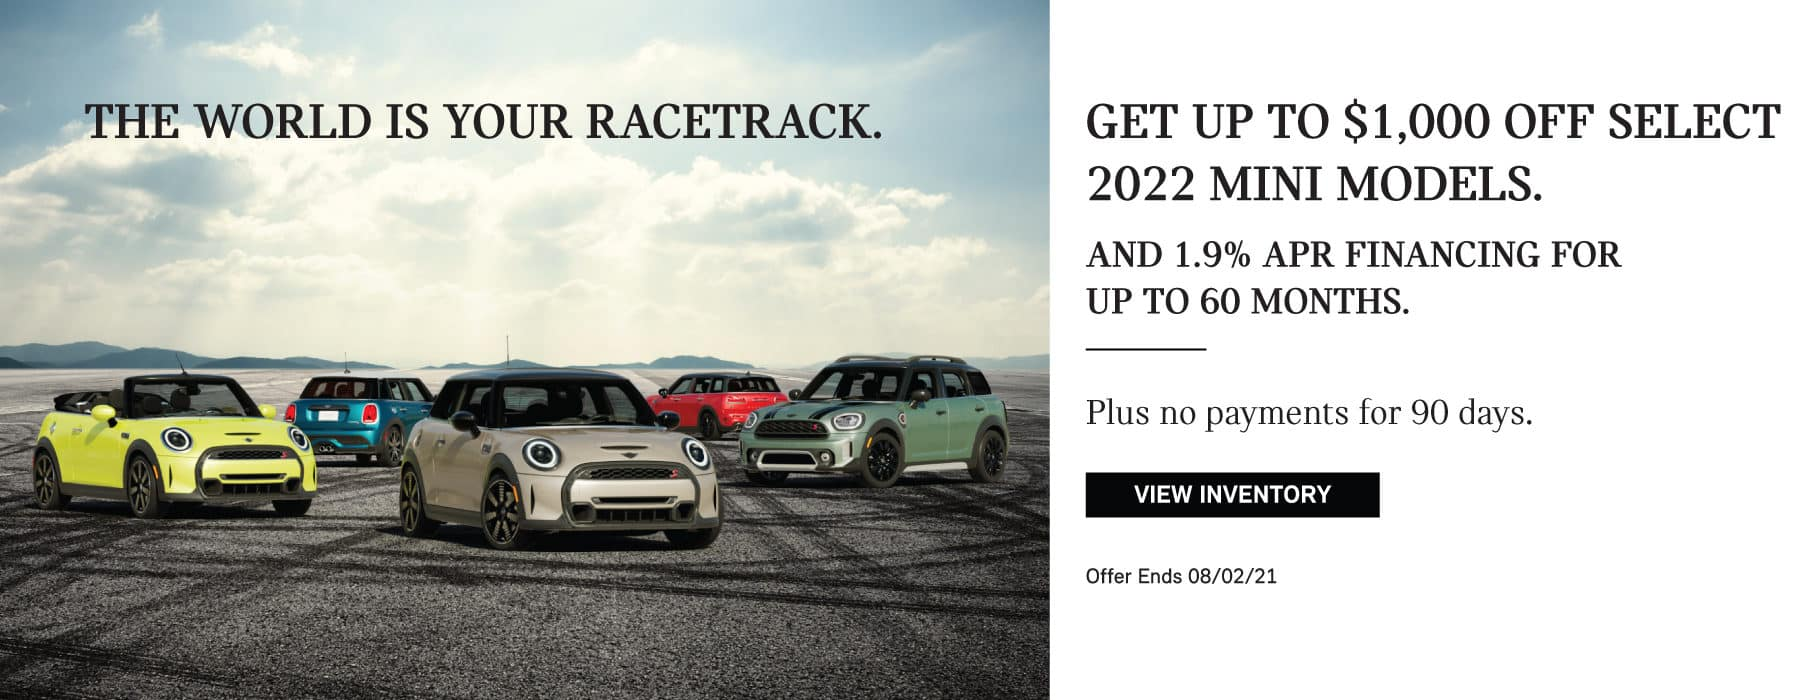 Get up to $1000 off select MINI models. And 1.9% APR financing for up to 60 months. Plus no payments for 90 days.